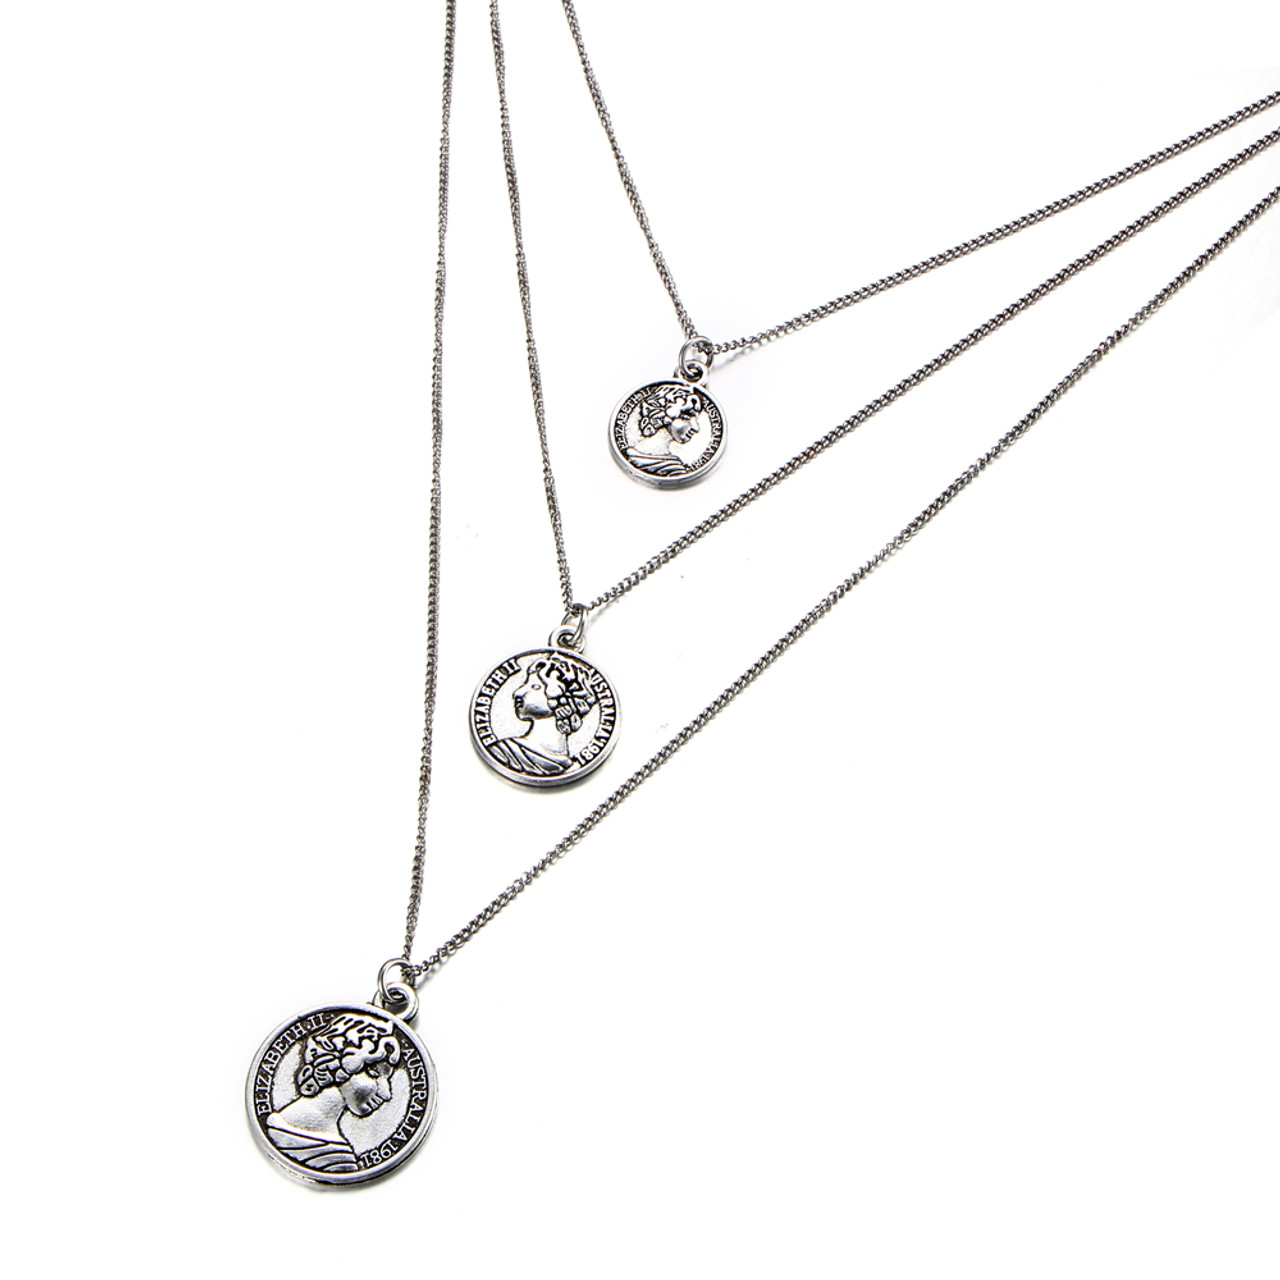 f47be85e16758 Delicate Triple Chain Necklace for Women Bohemian Vintage Gold Silver Color  Coins Pendant Necklace Fashion Jewelry {Silver}